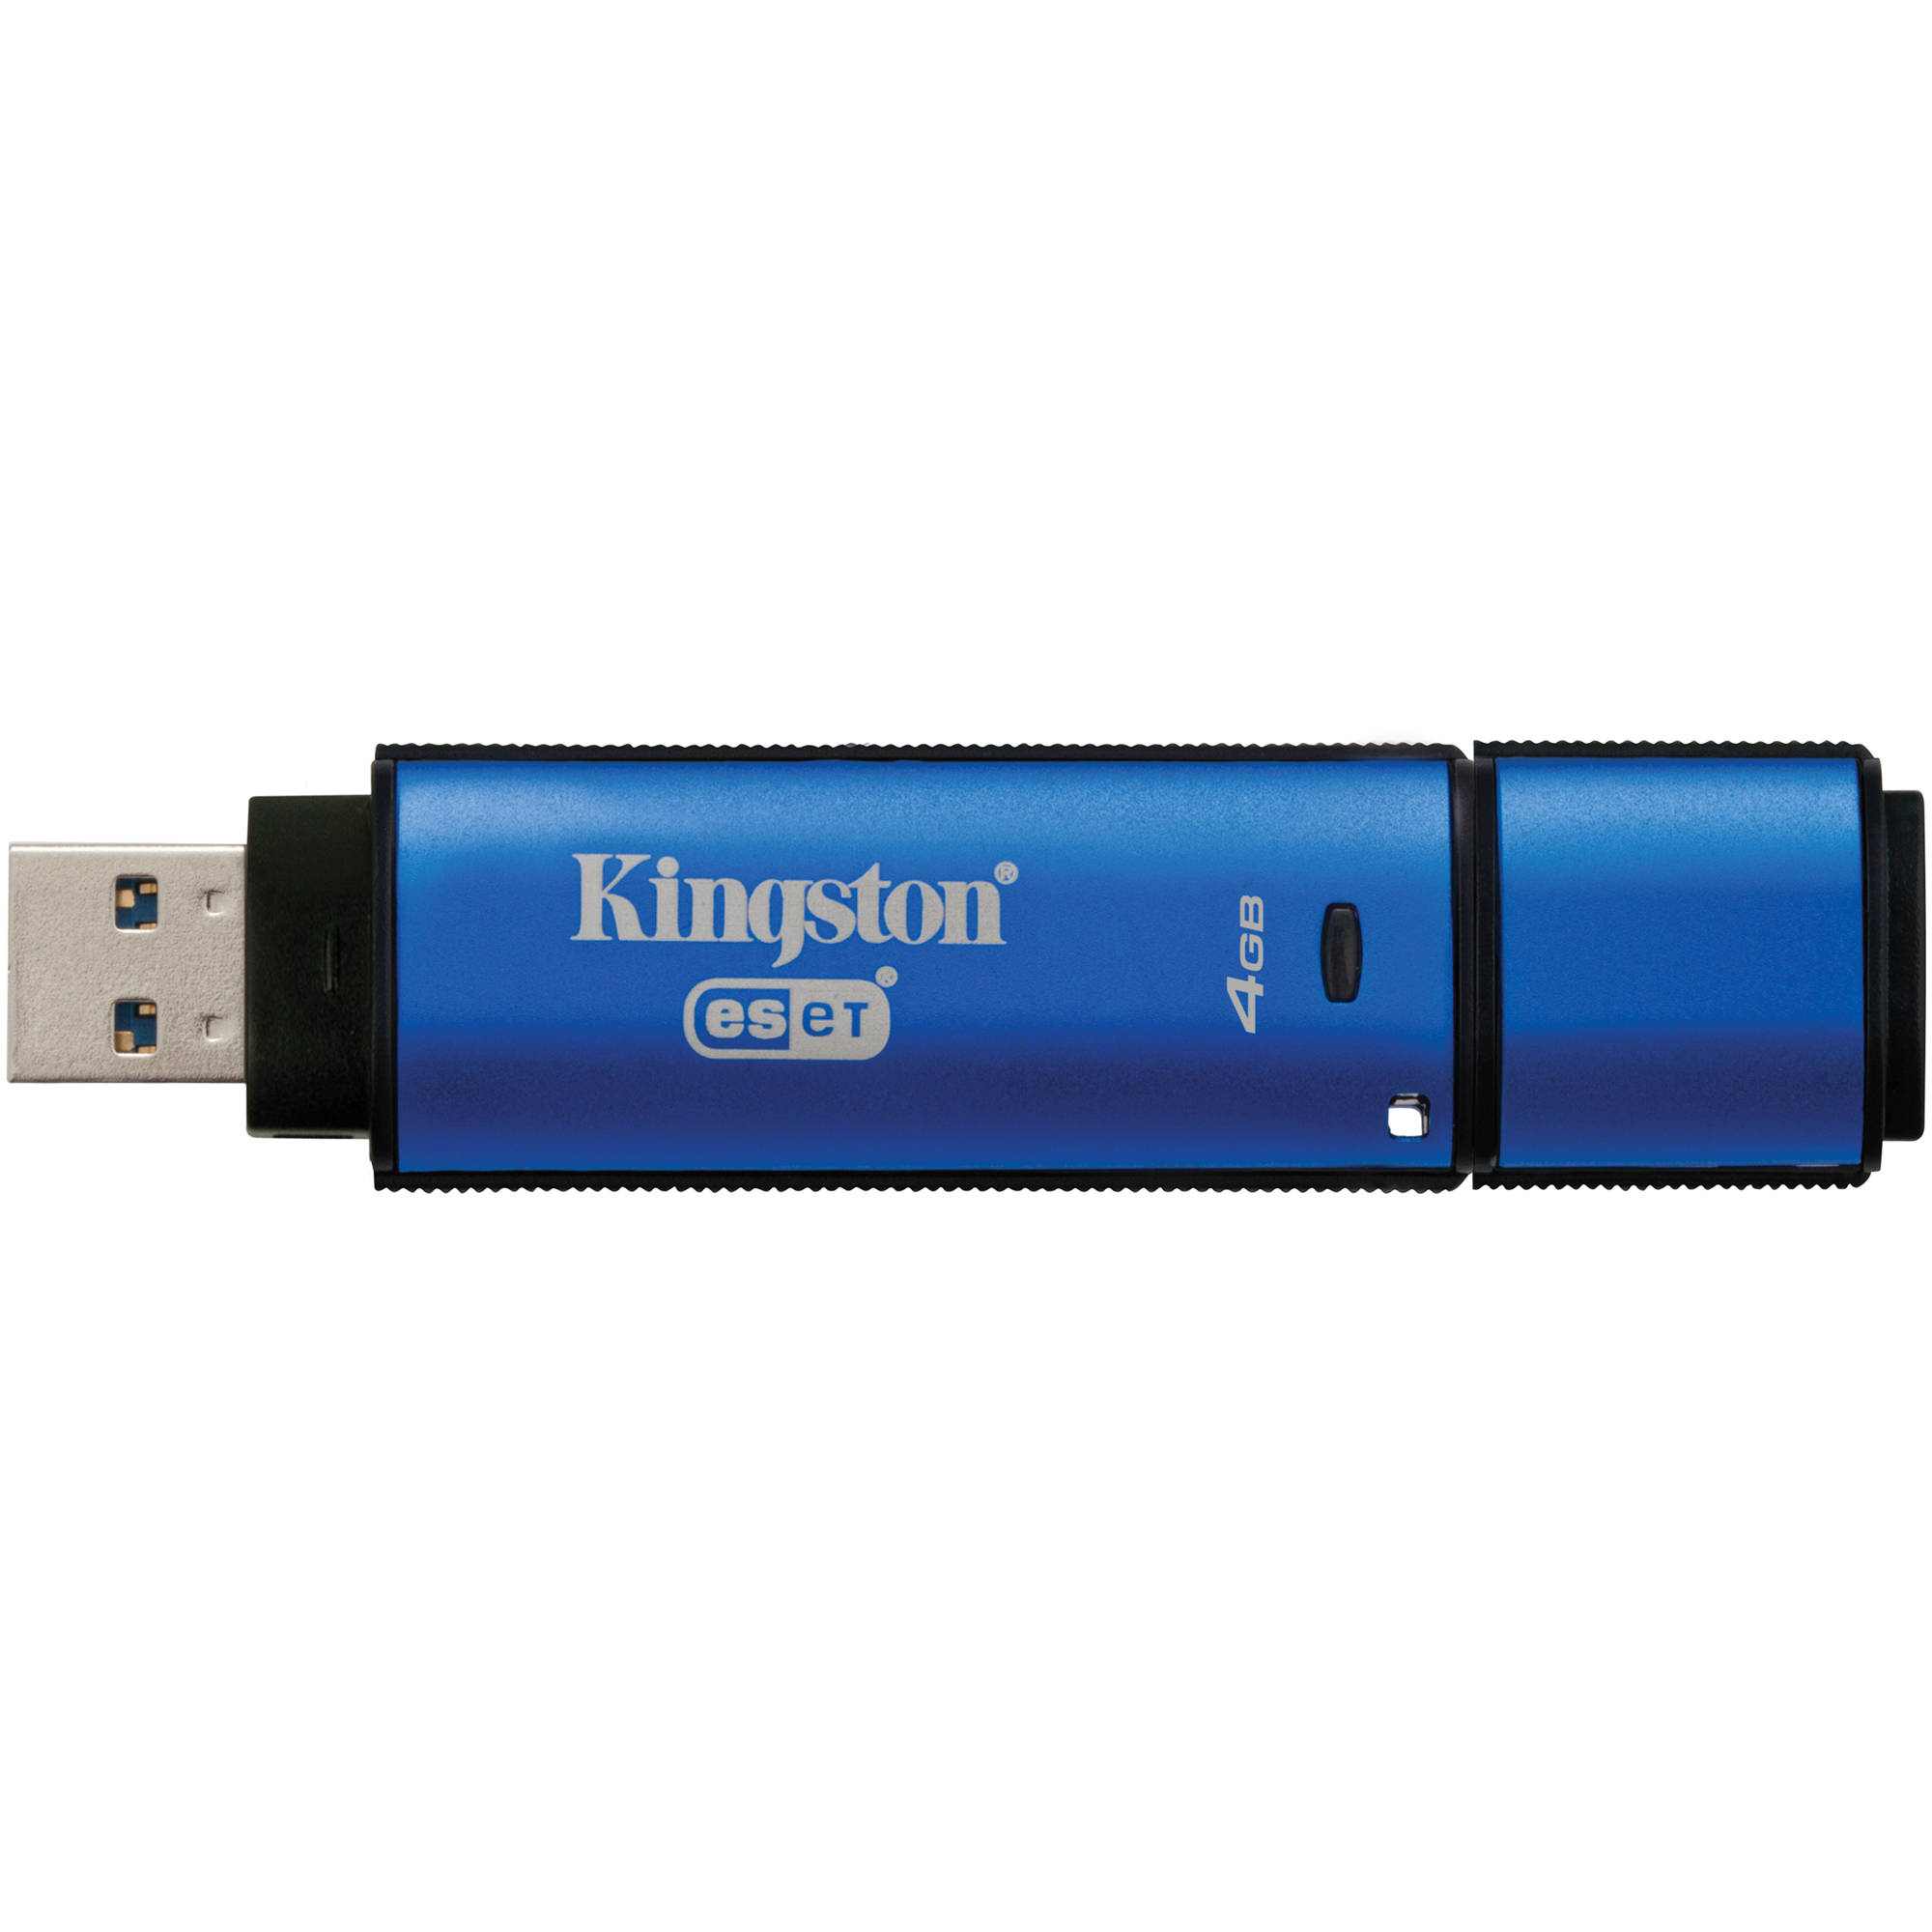 Kingston 4gb Datatraveler Vault Privacy 30 Usb Dtvp30av Bh Flasdisk Flash Drive With Anti Virus